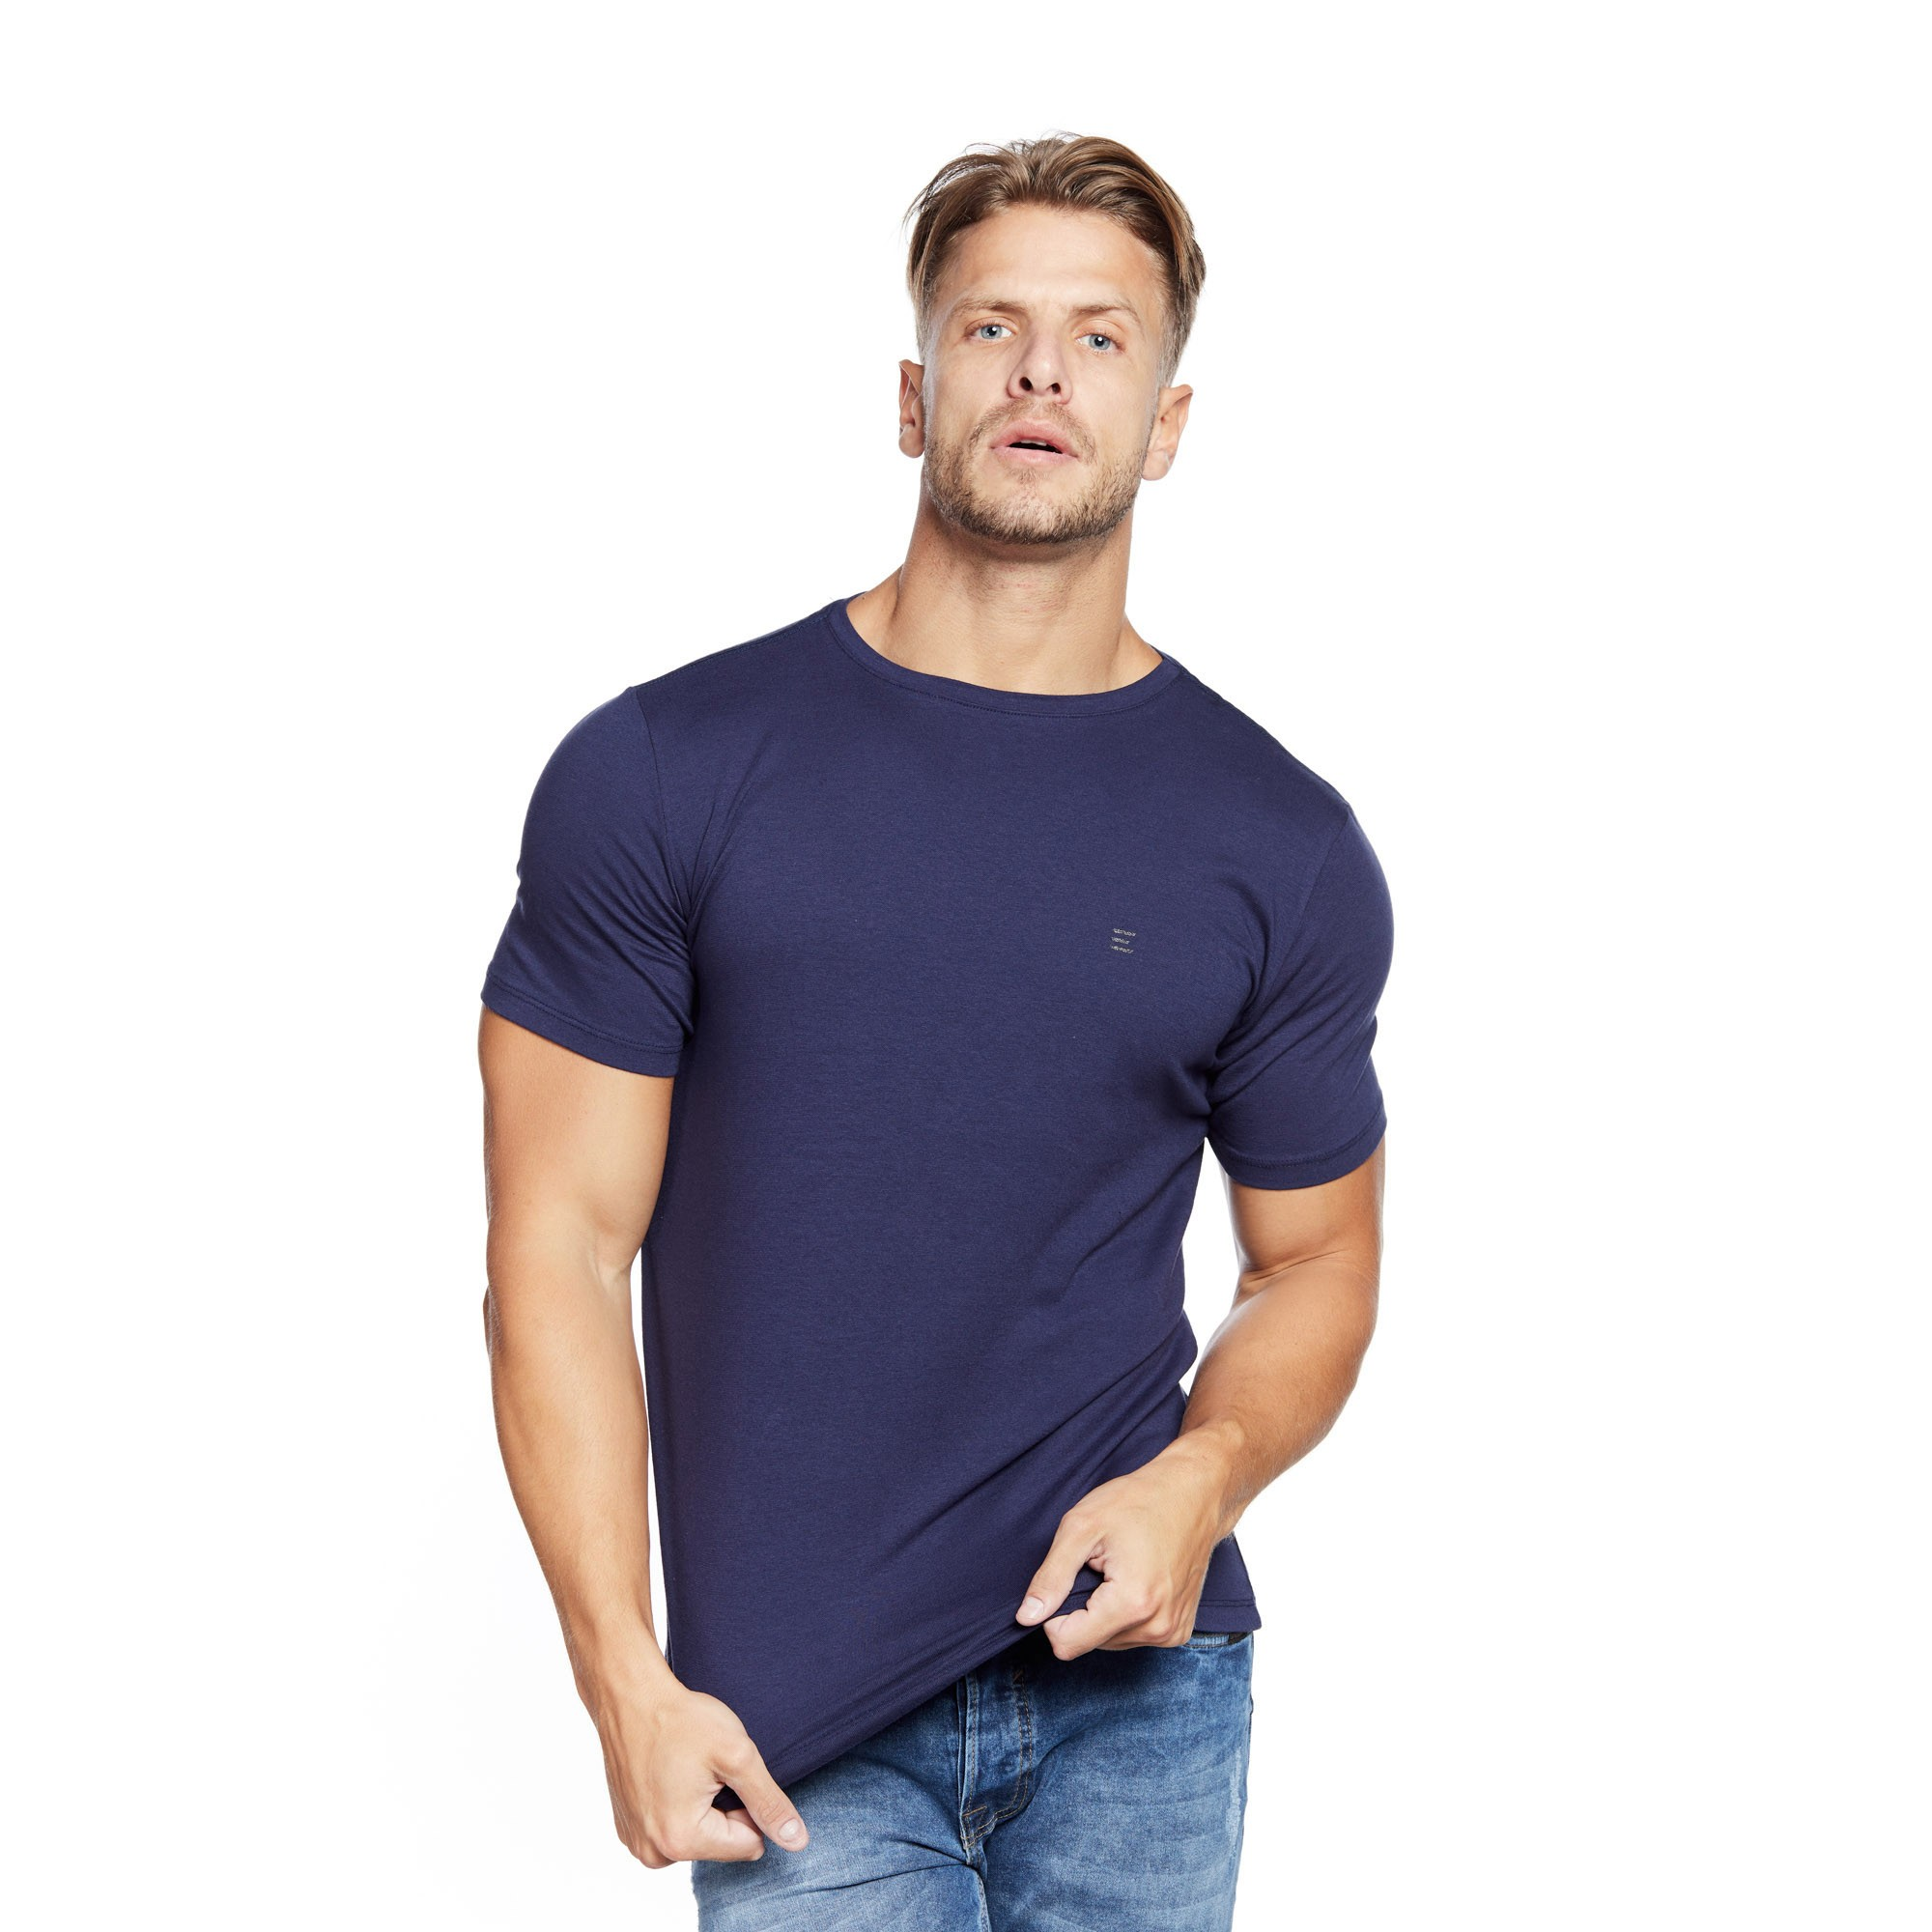 Camiseta Cotton Lycra Masculina Evolvee